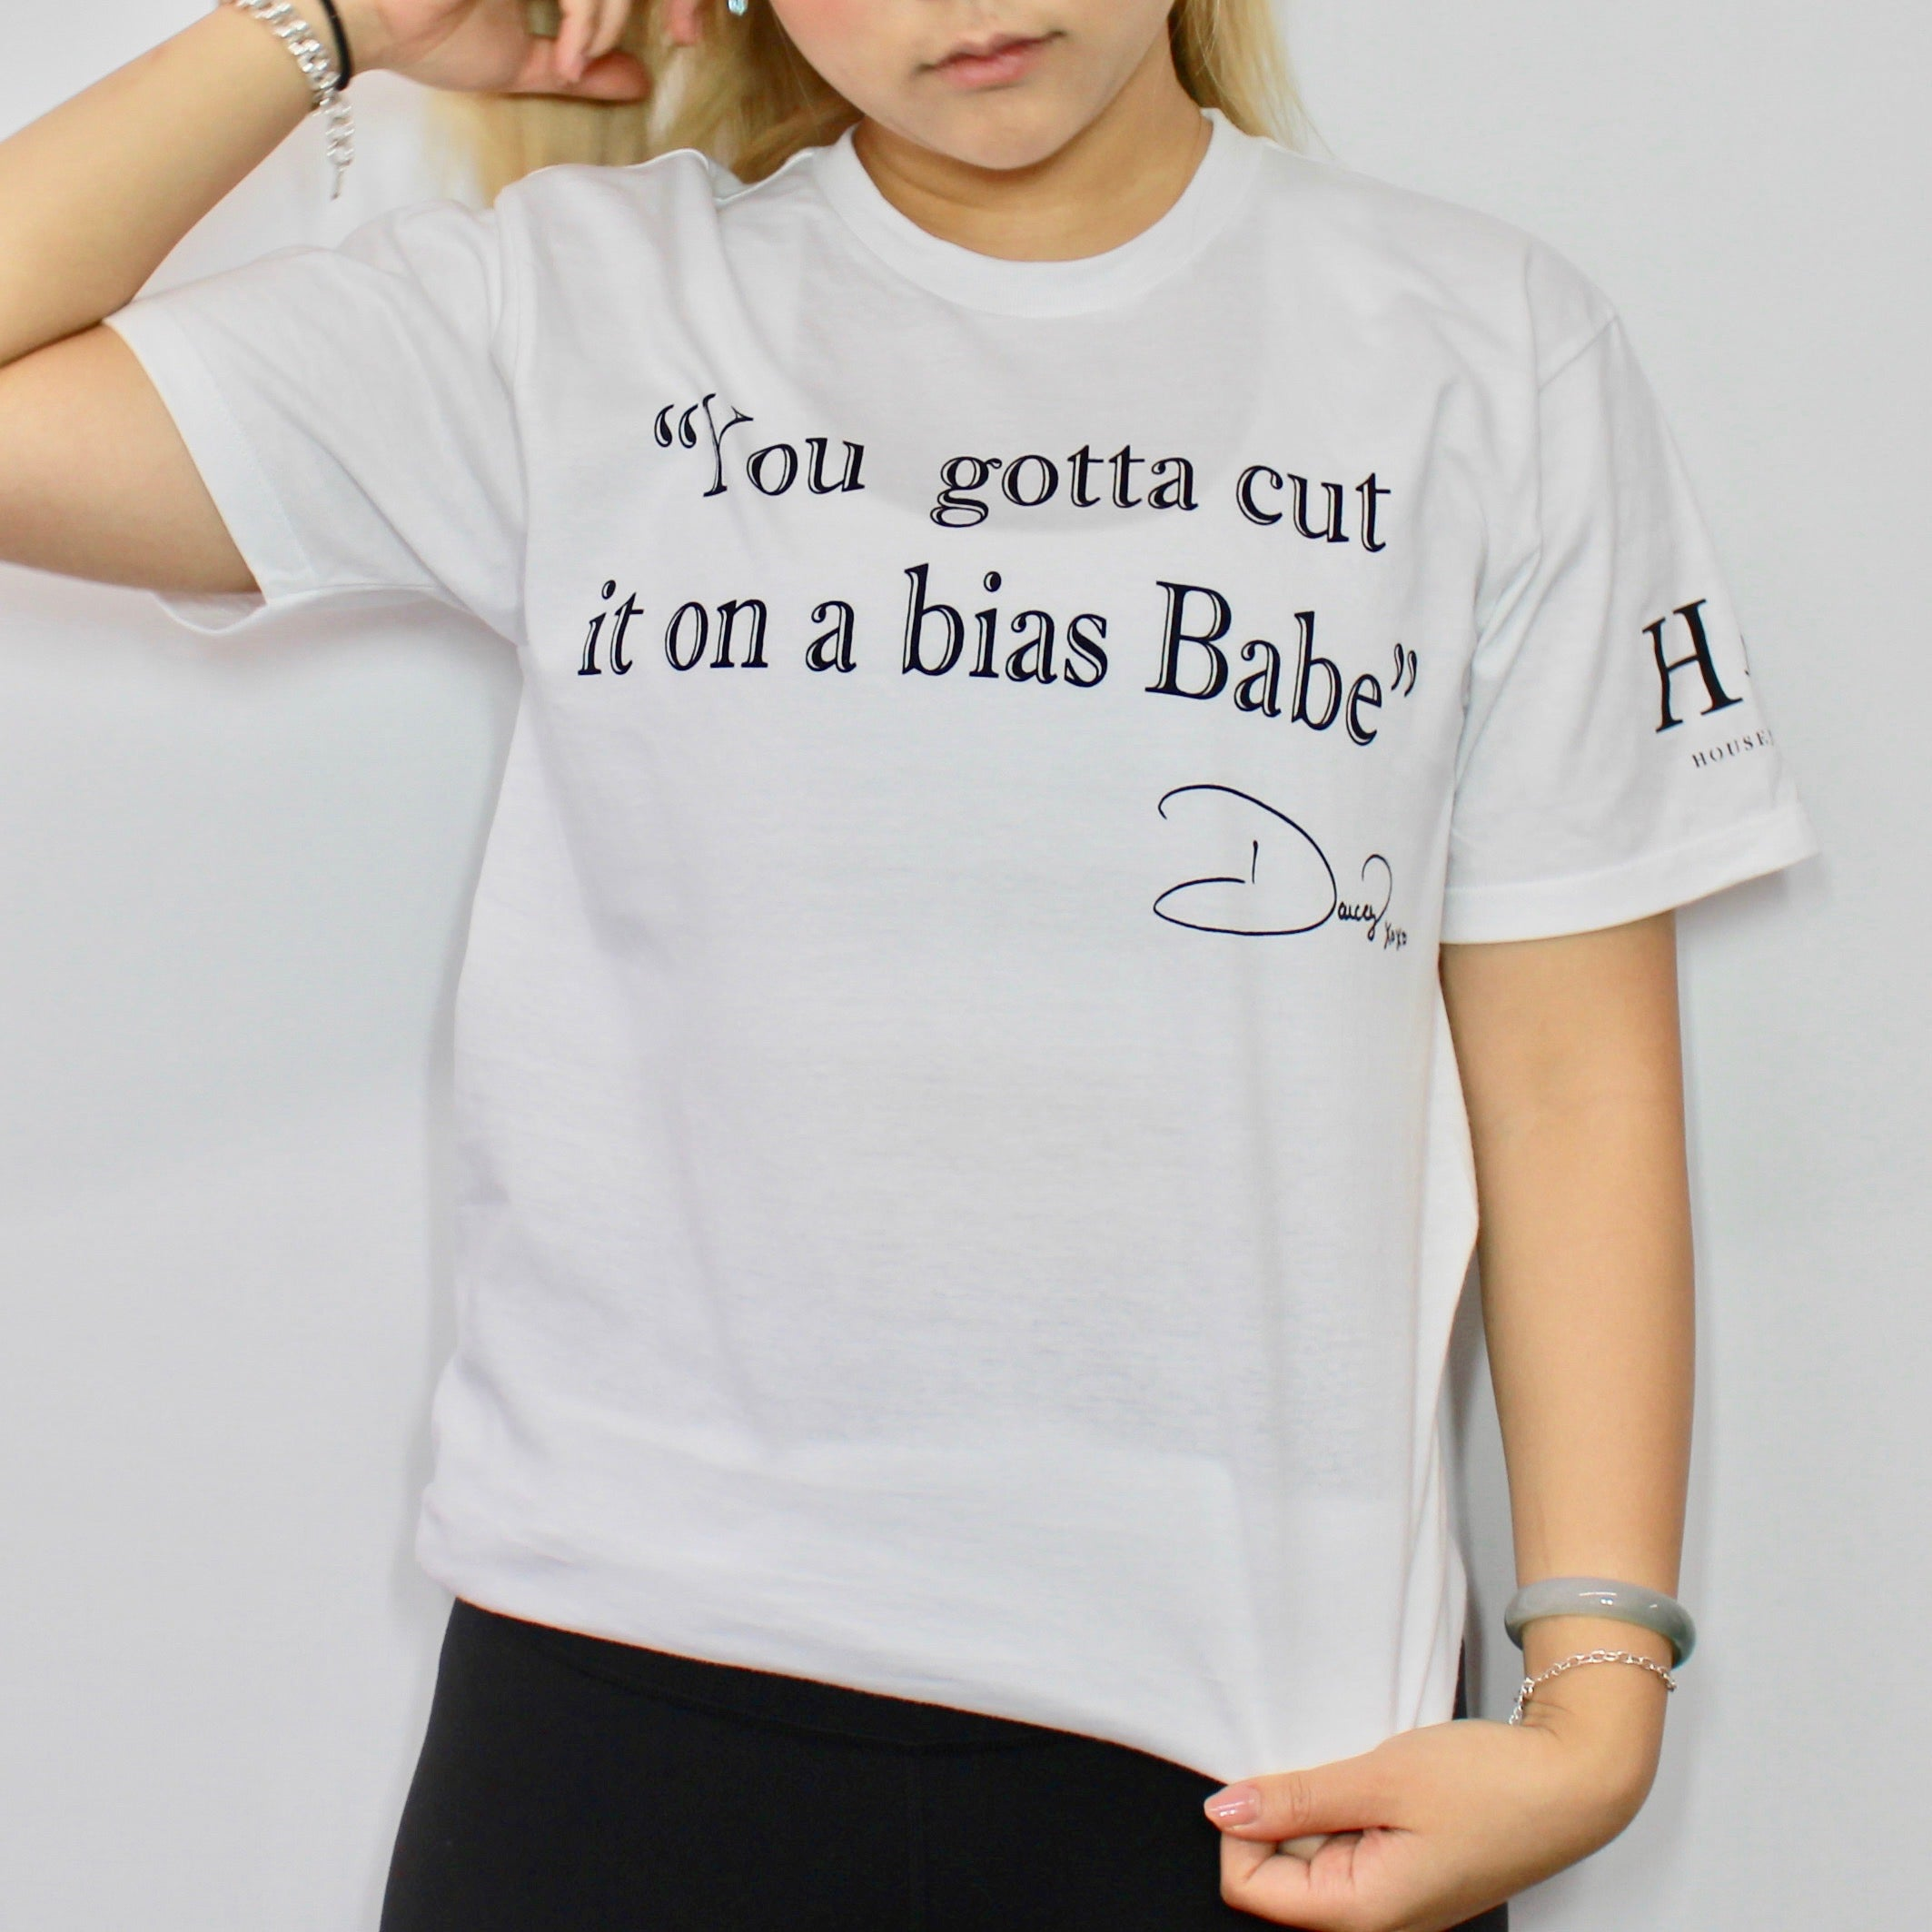 """You gotta cut it on a bias Babe"" T-Shirt"